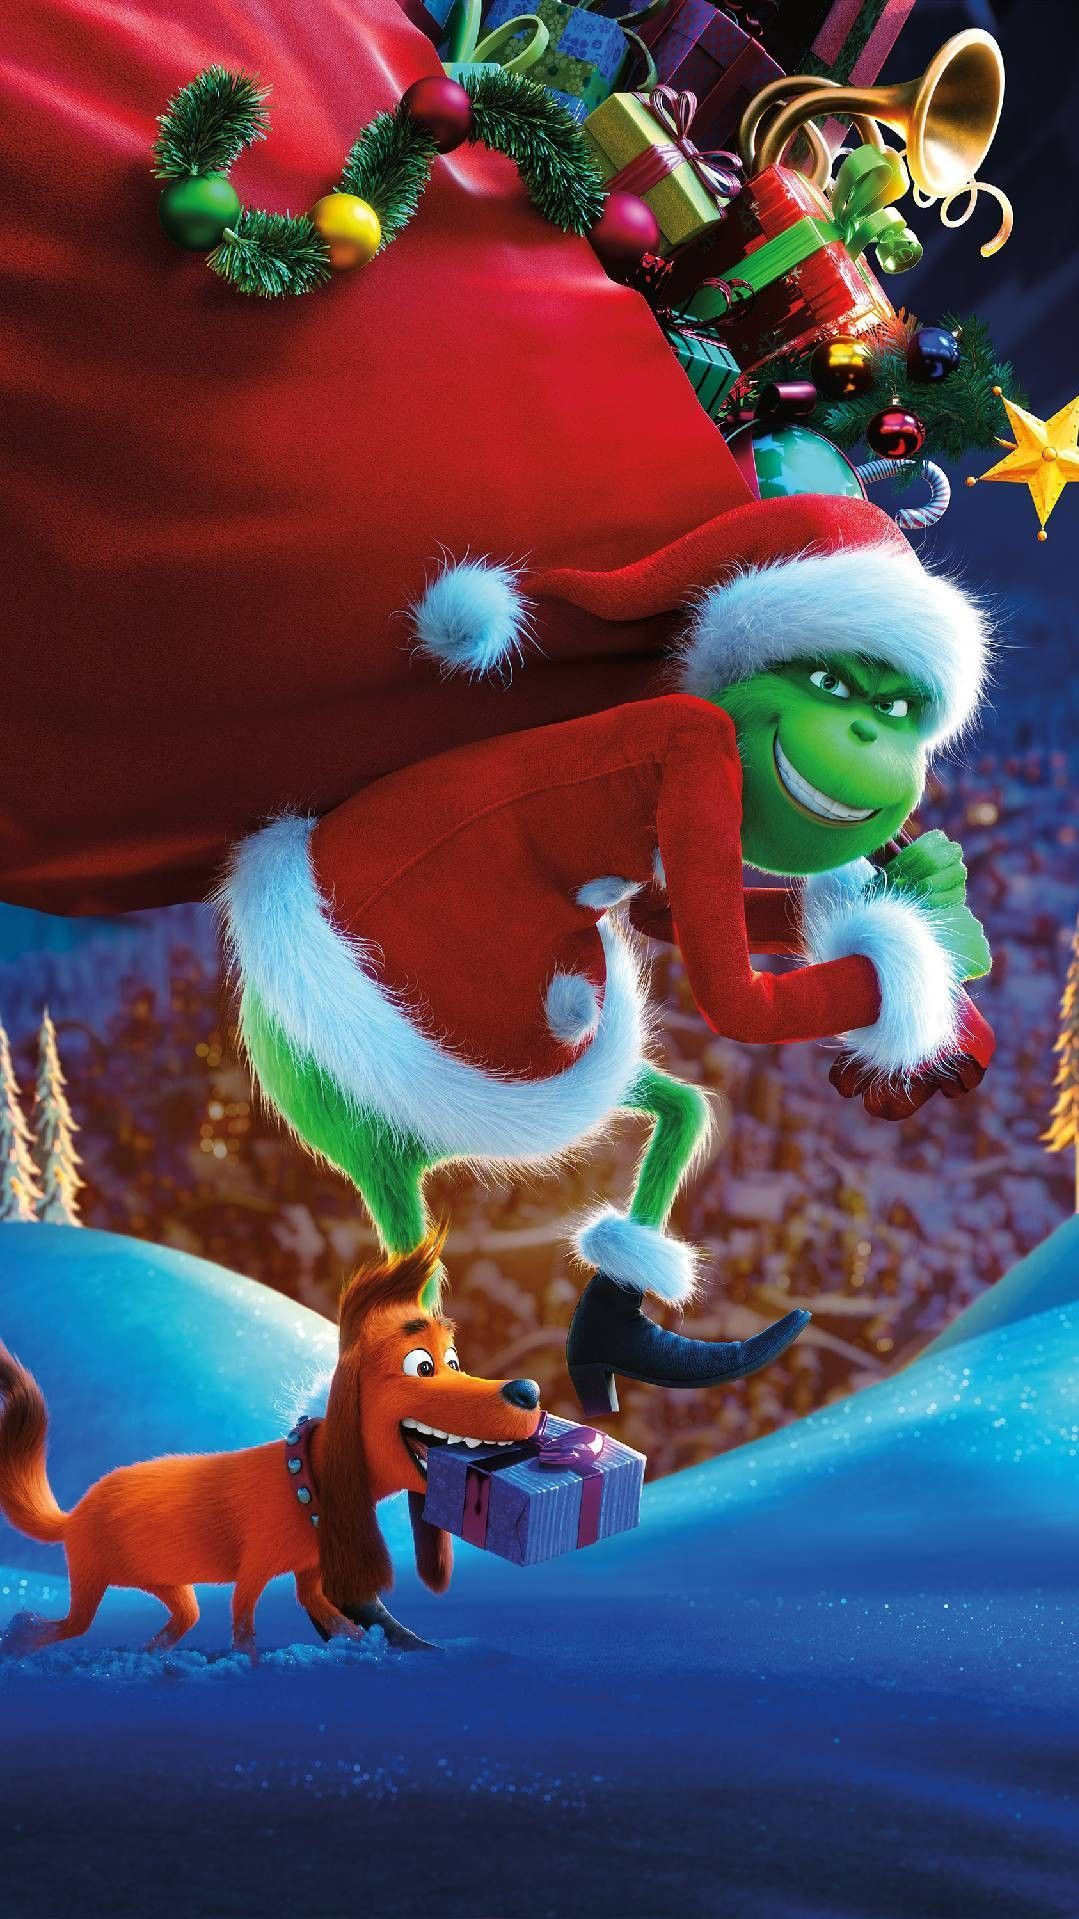 1079x1919 Pin by Morgan Noble on The Grinch | Grinch, Iphone wallpaper ...